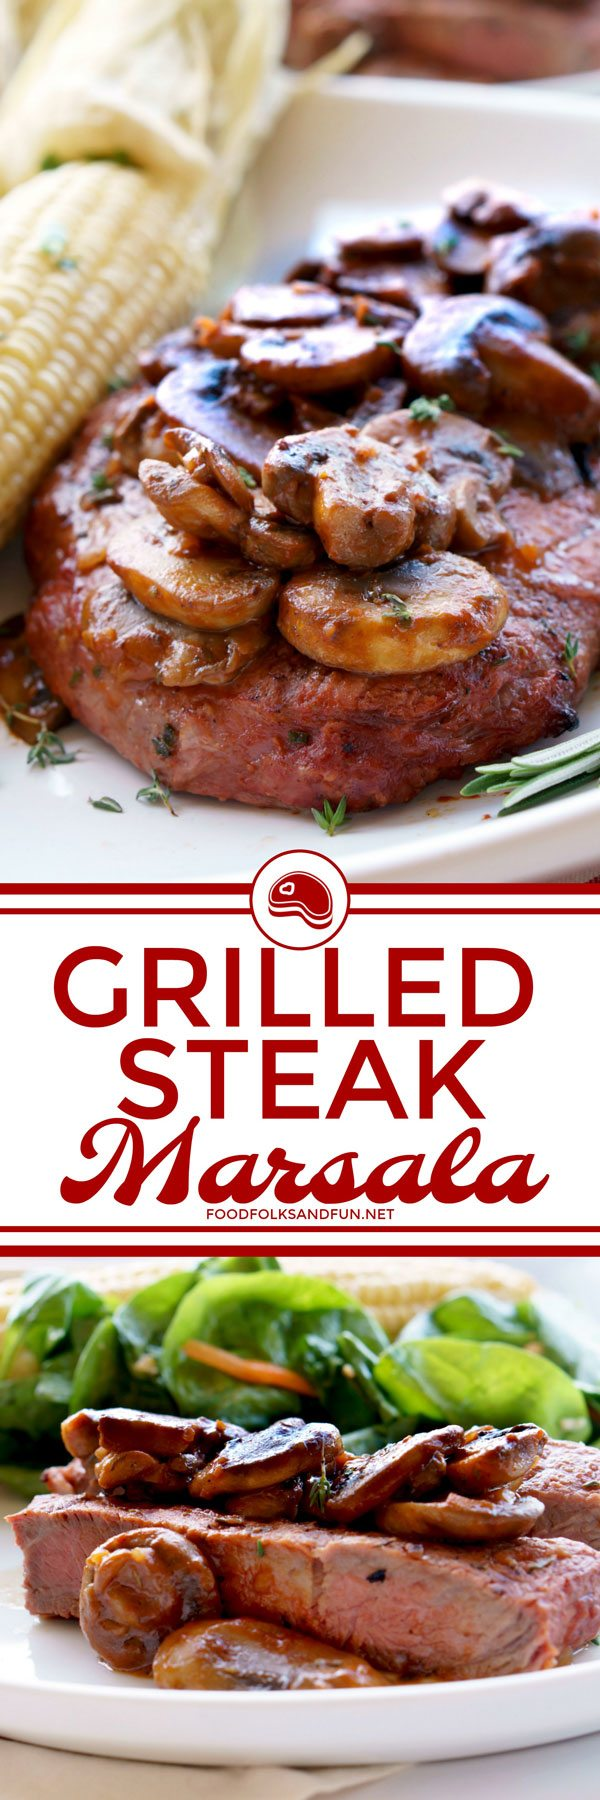 Grilled Steak Marsala recipe for easy weeknight dinners or entertaining